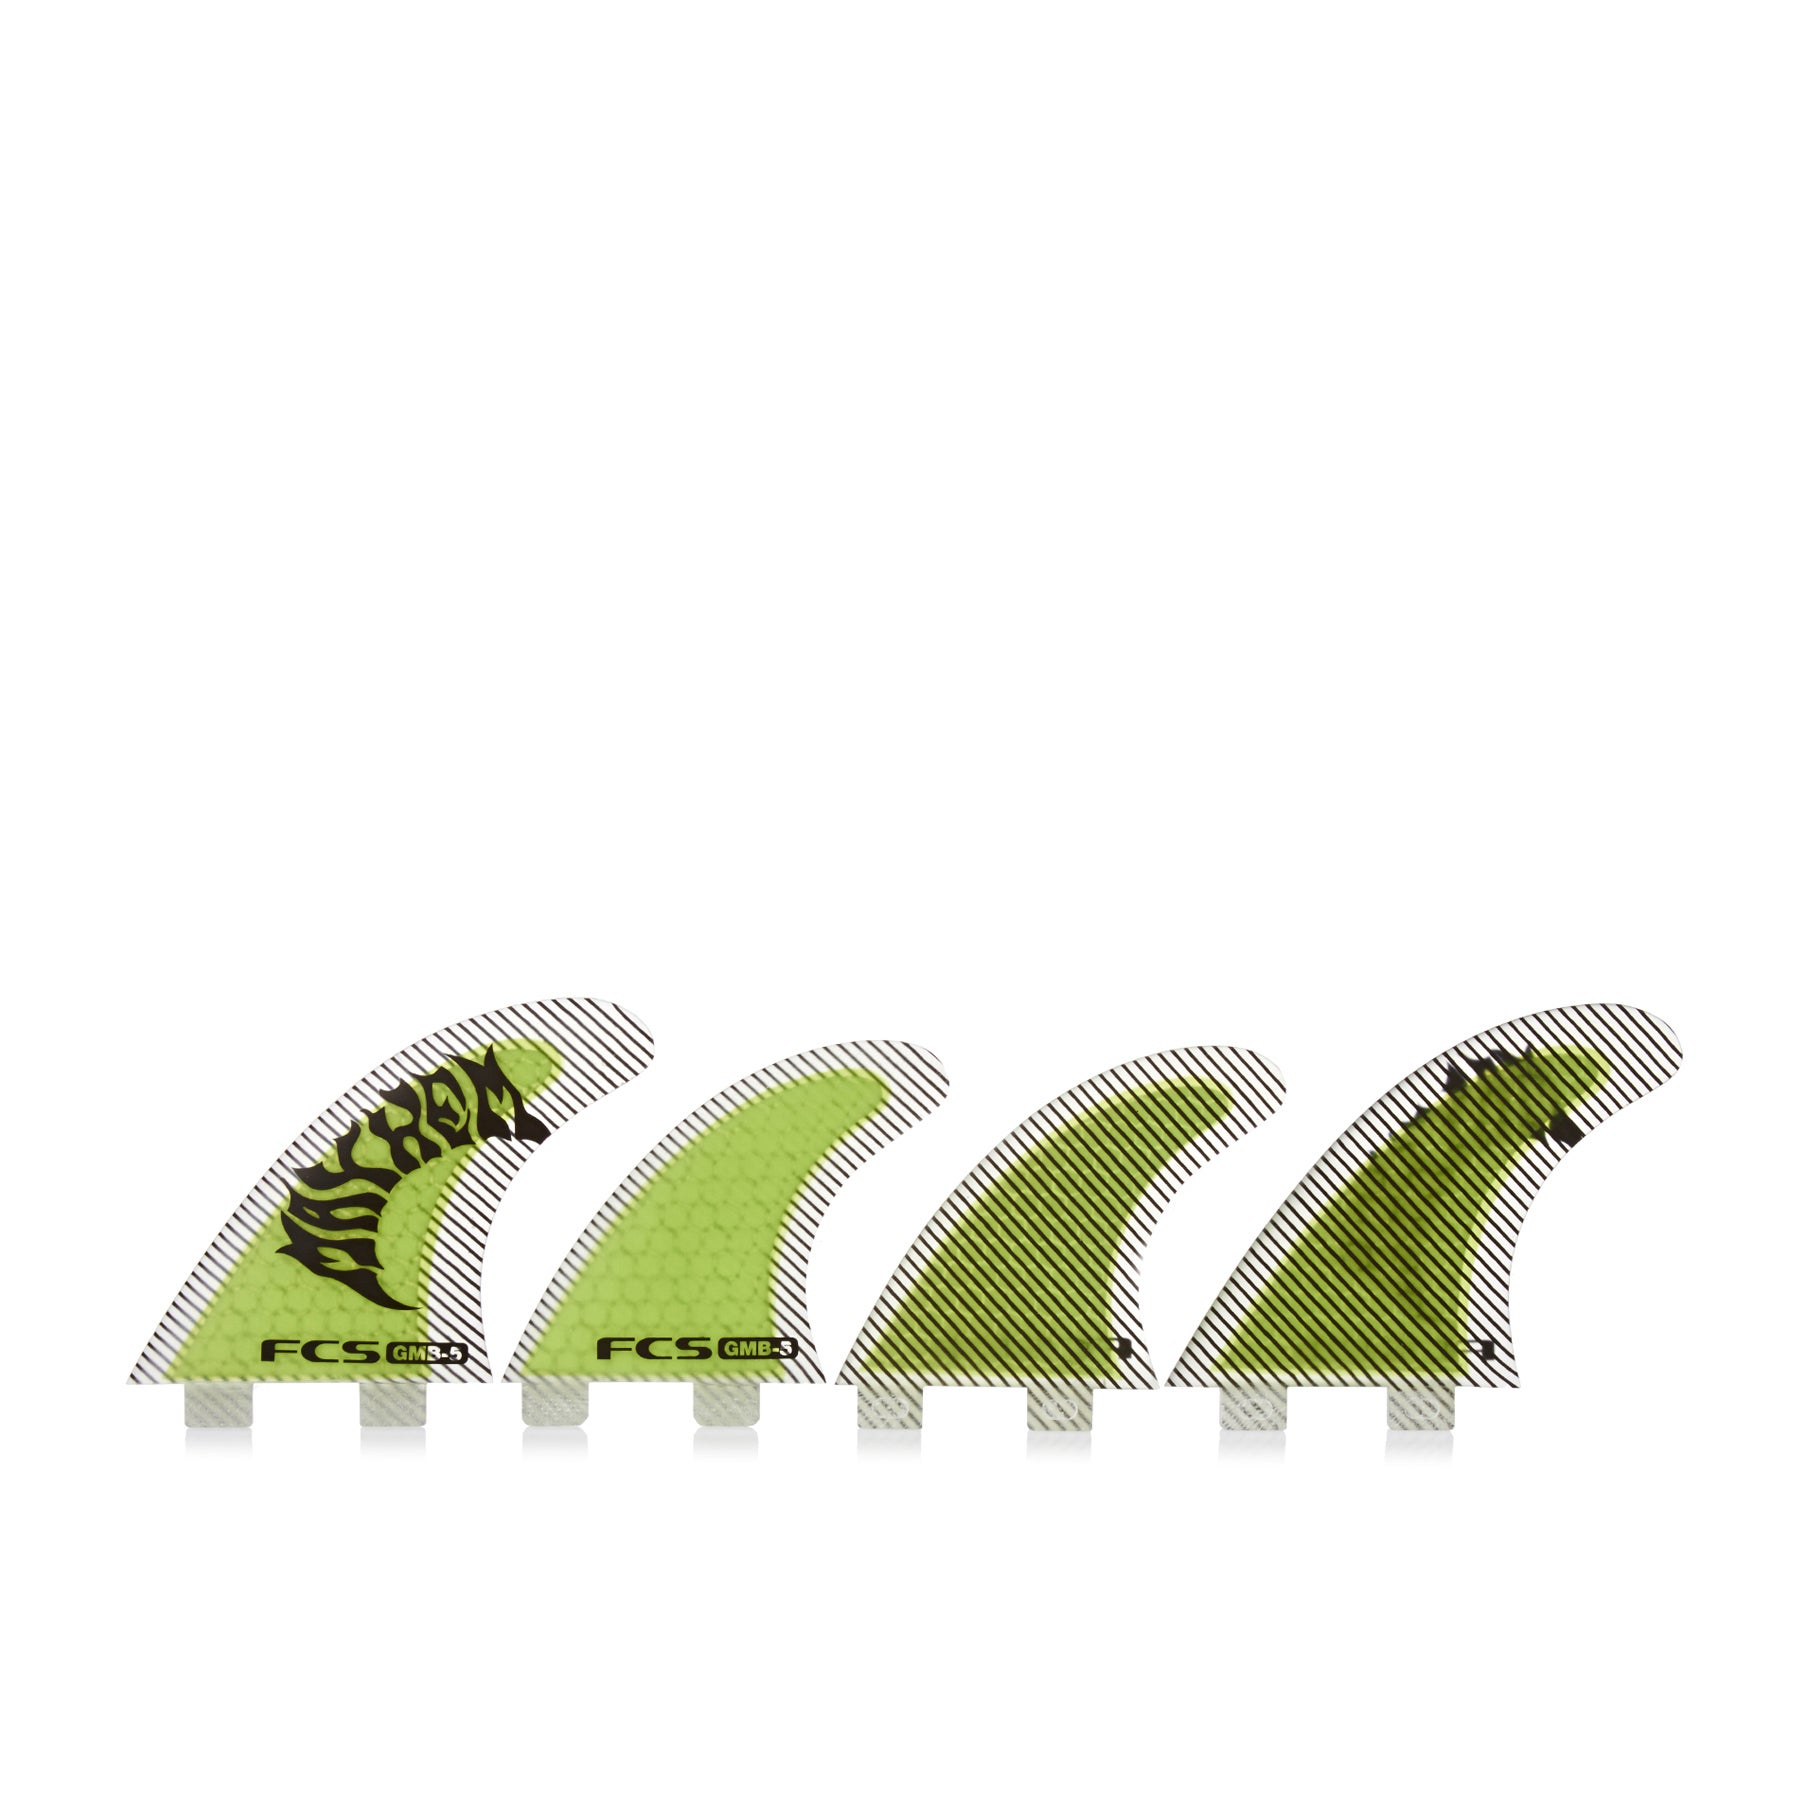 FCS GMB Performance Core Quad Fin - Large